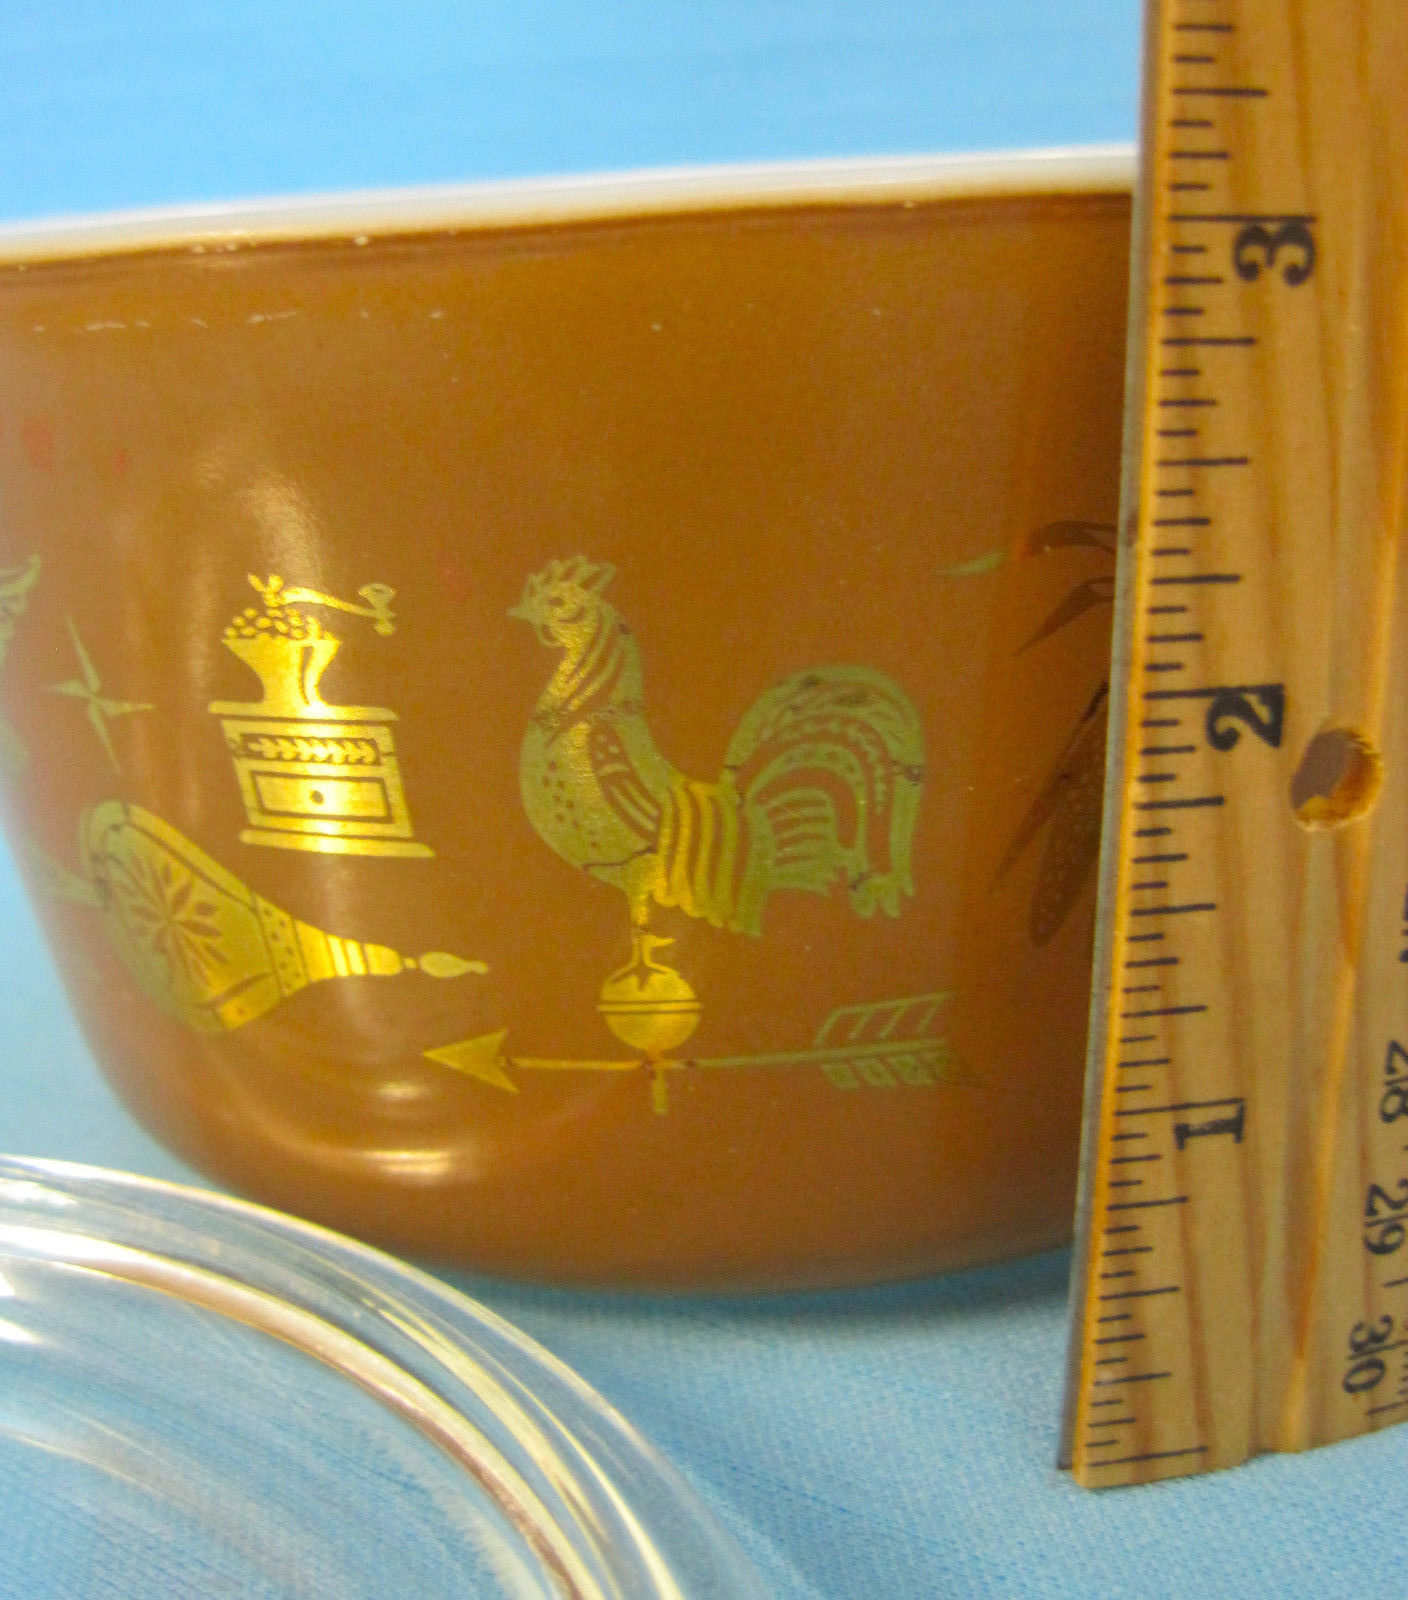 Pyrex Brown Gold Early American 1 Quart Casserole Dish Bowl Clear Lid 1960s